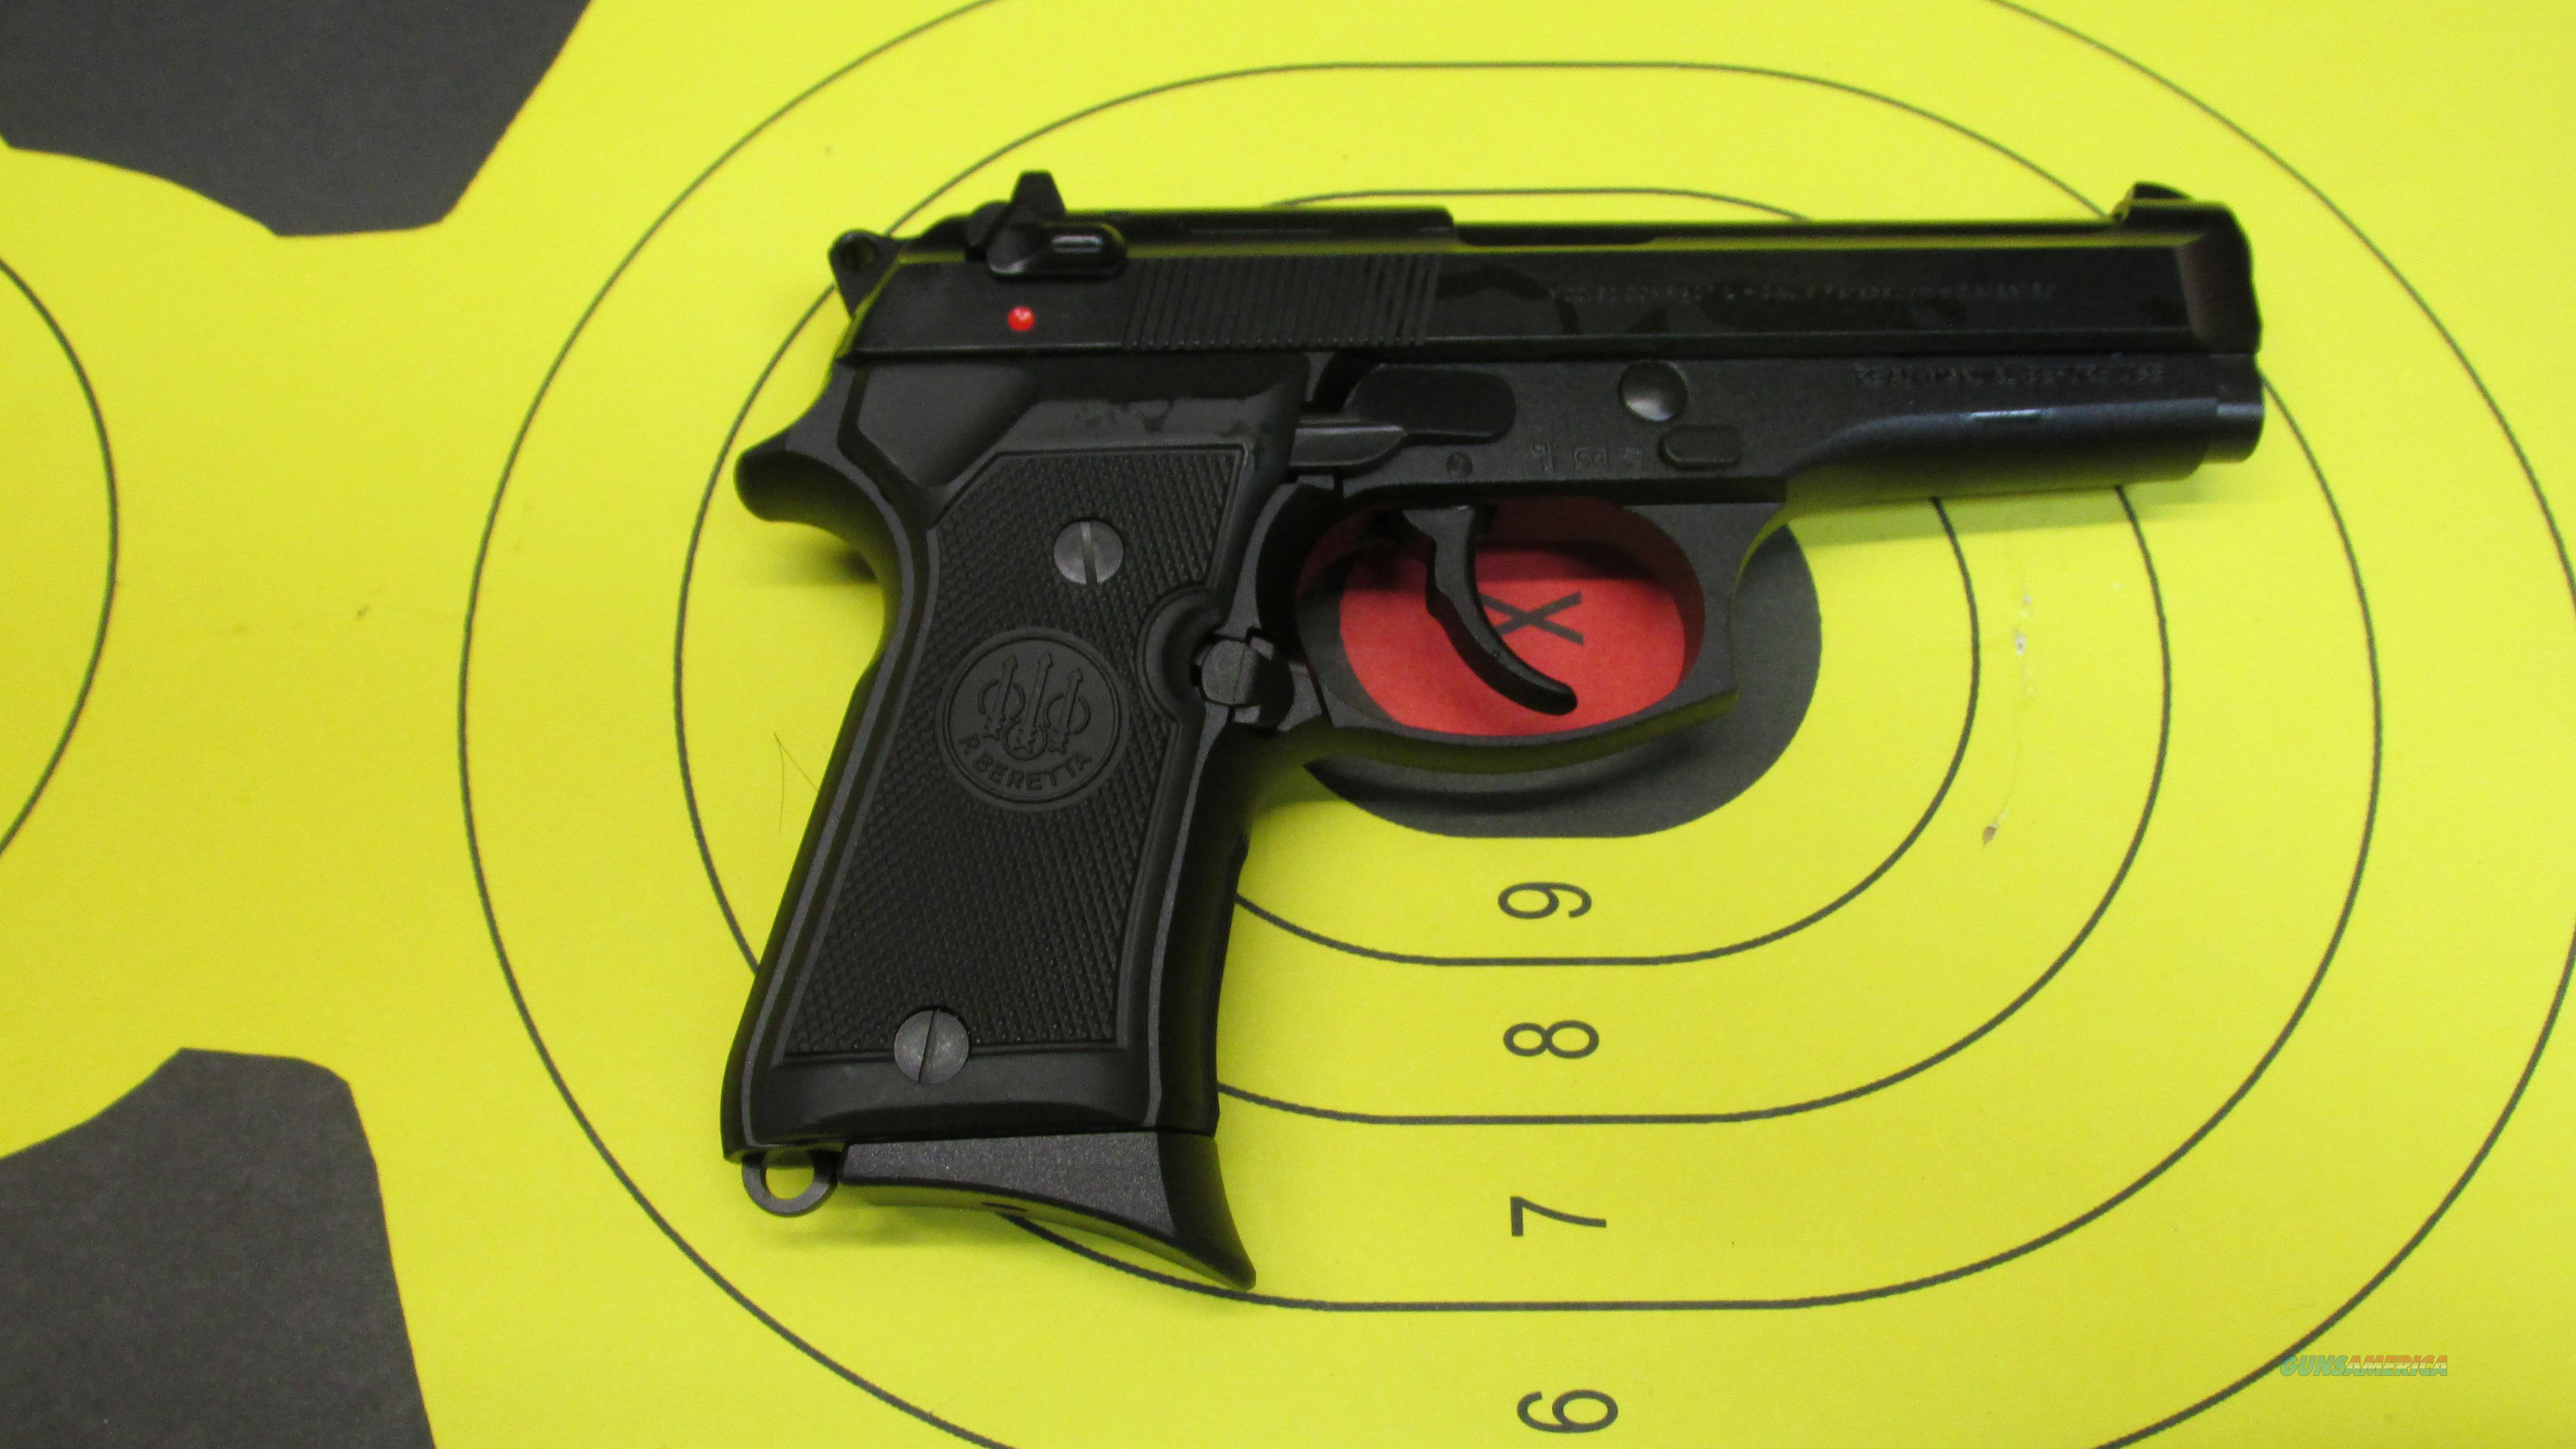 "BERETTA 92 COMPACT BLACK 9MM PISTOL 2 13 ROUND MAGS WITH 4.25"" BARREL  Guns > Pistols > Beretta Pistols > Model 92 Series"